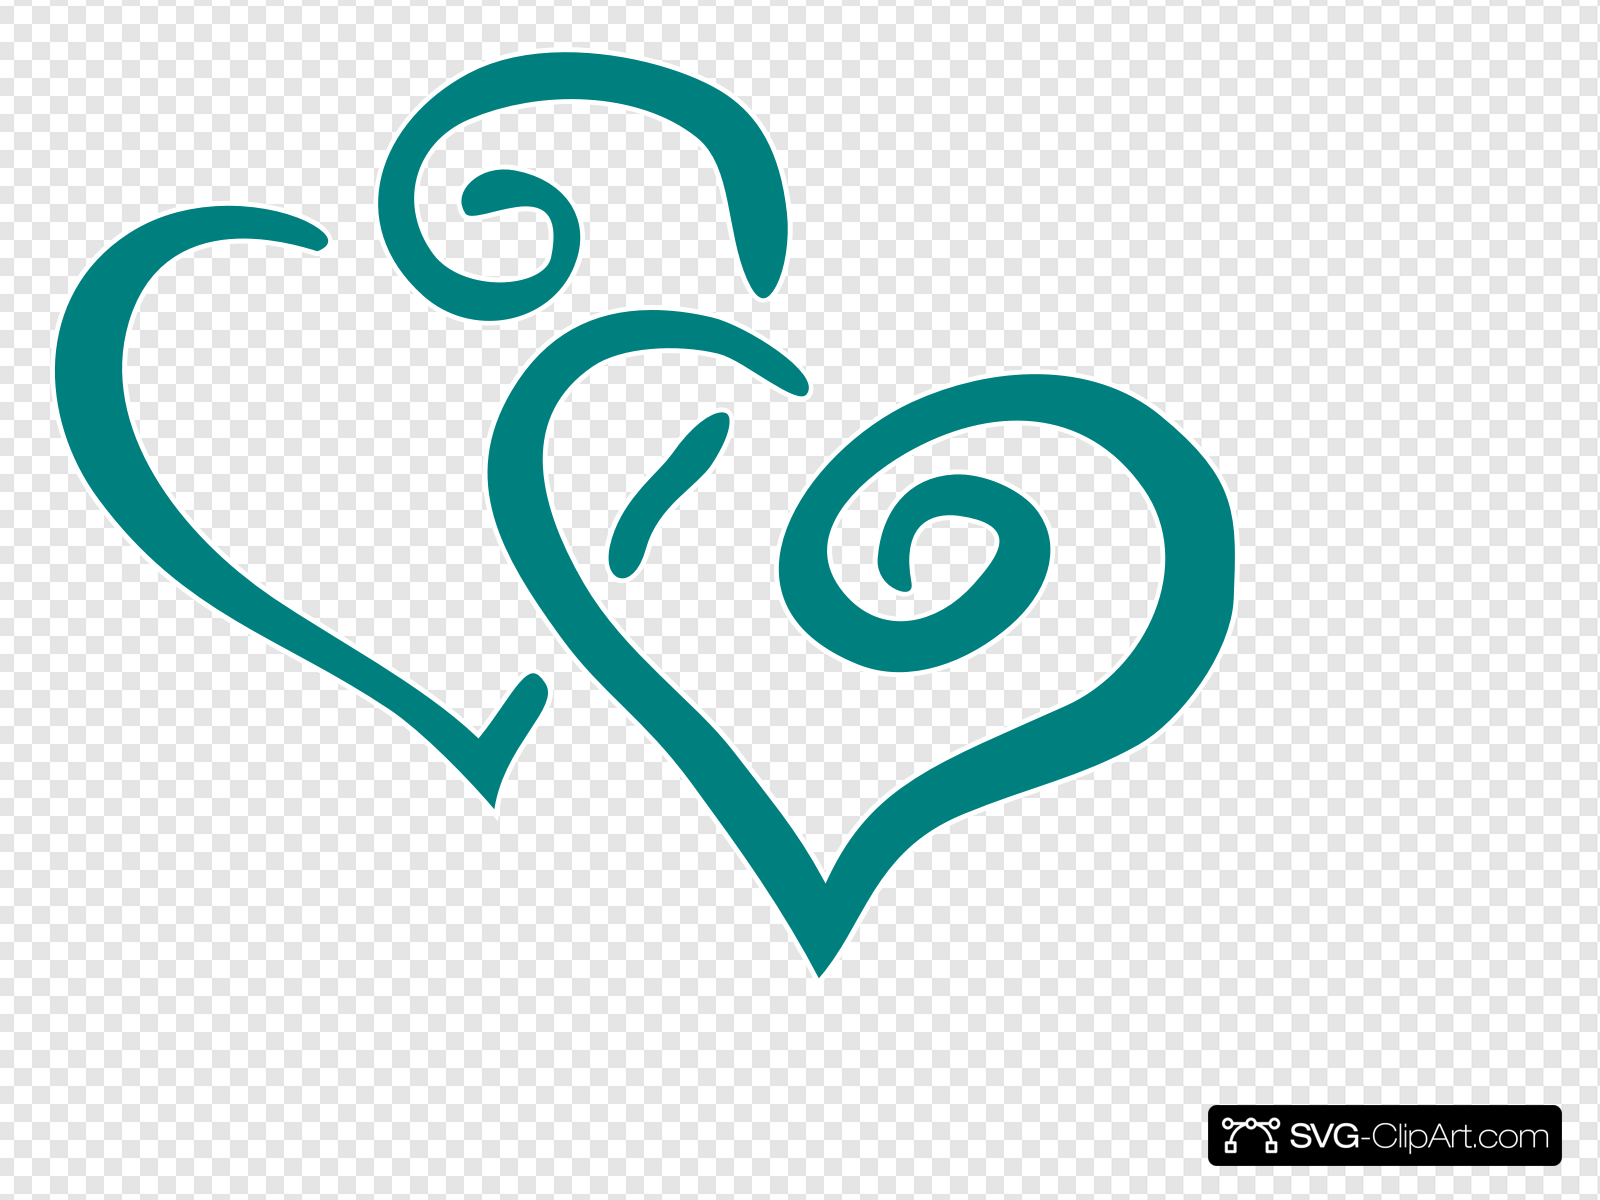 Teal Intertwined Hearts Clip art, Icon and SVG.